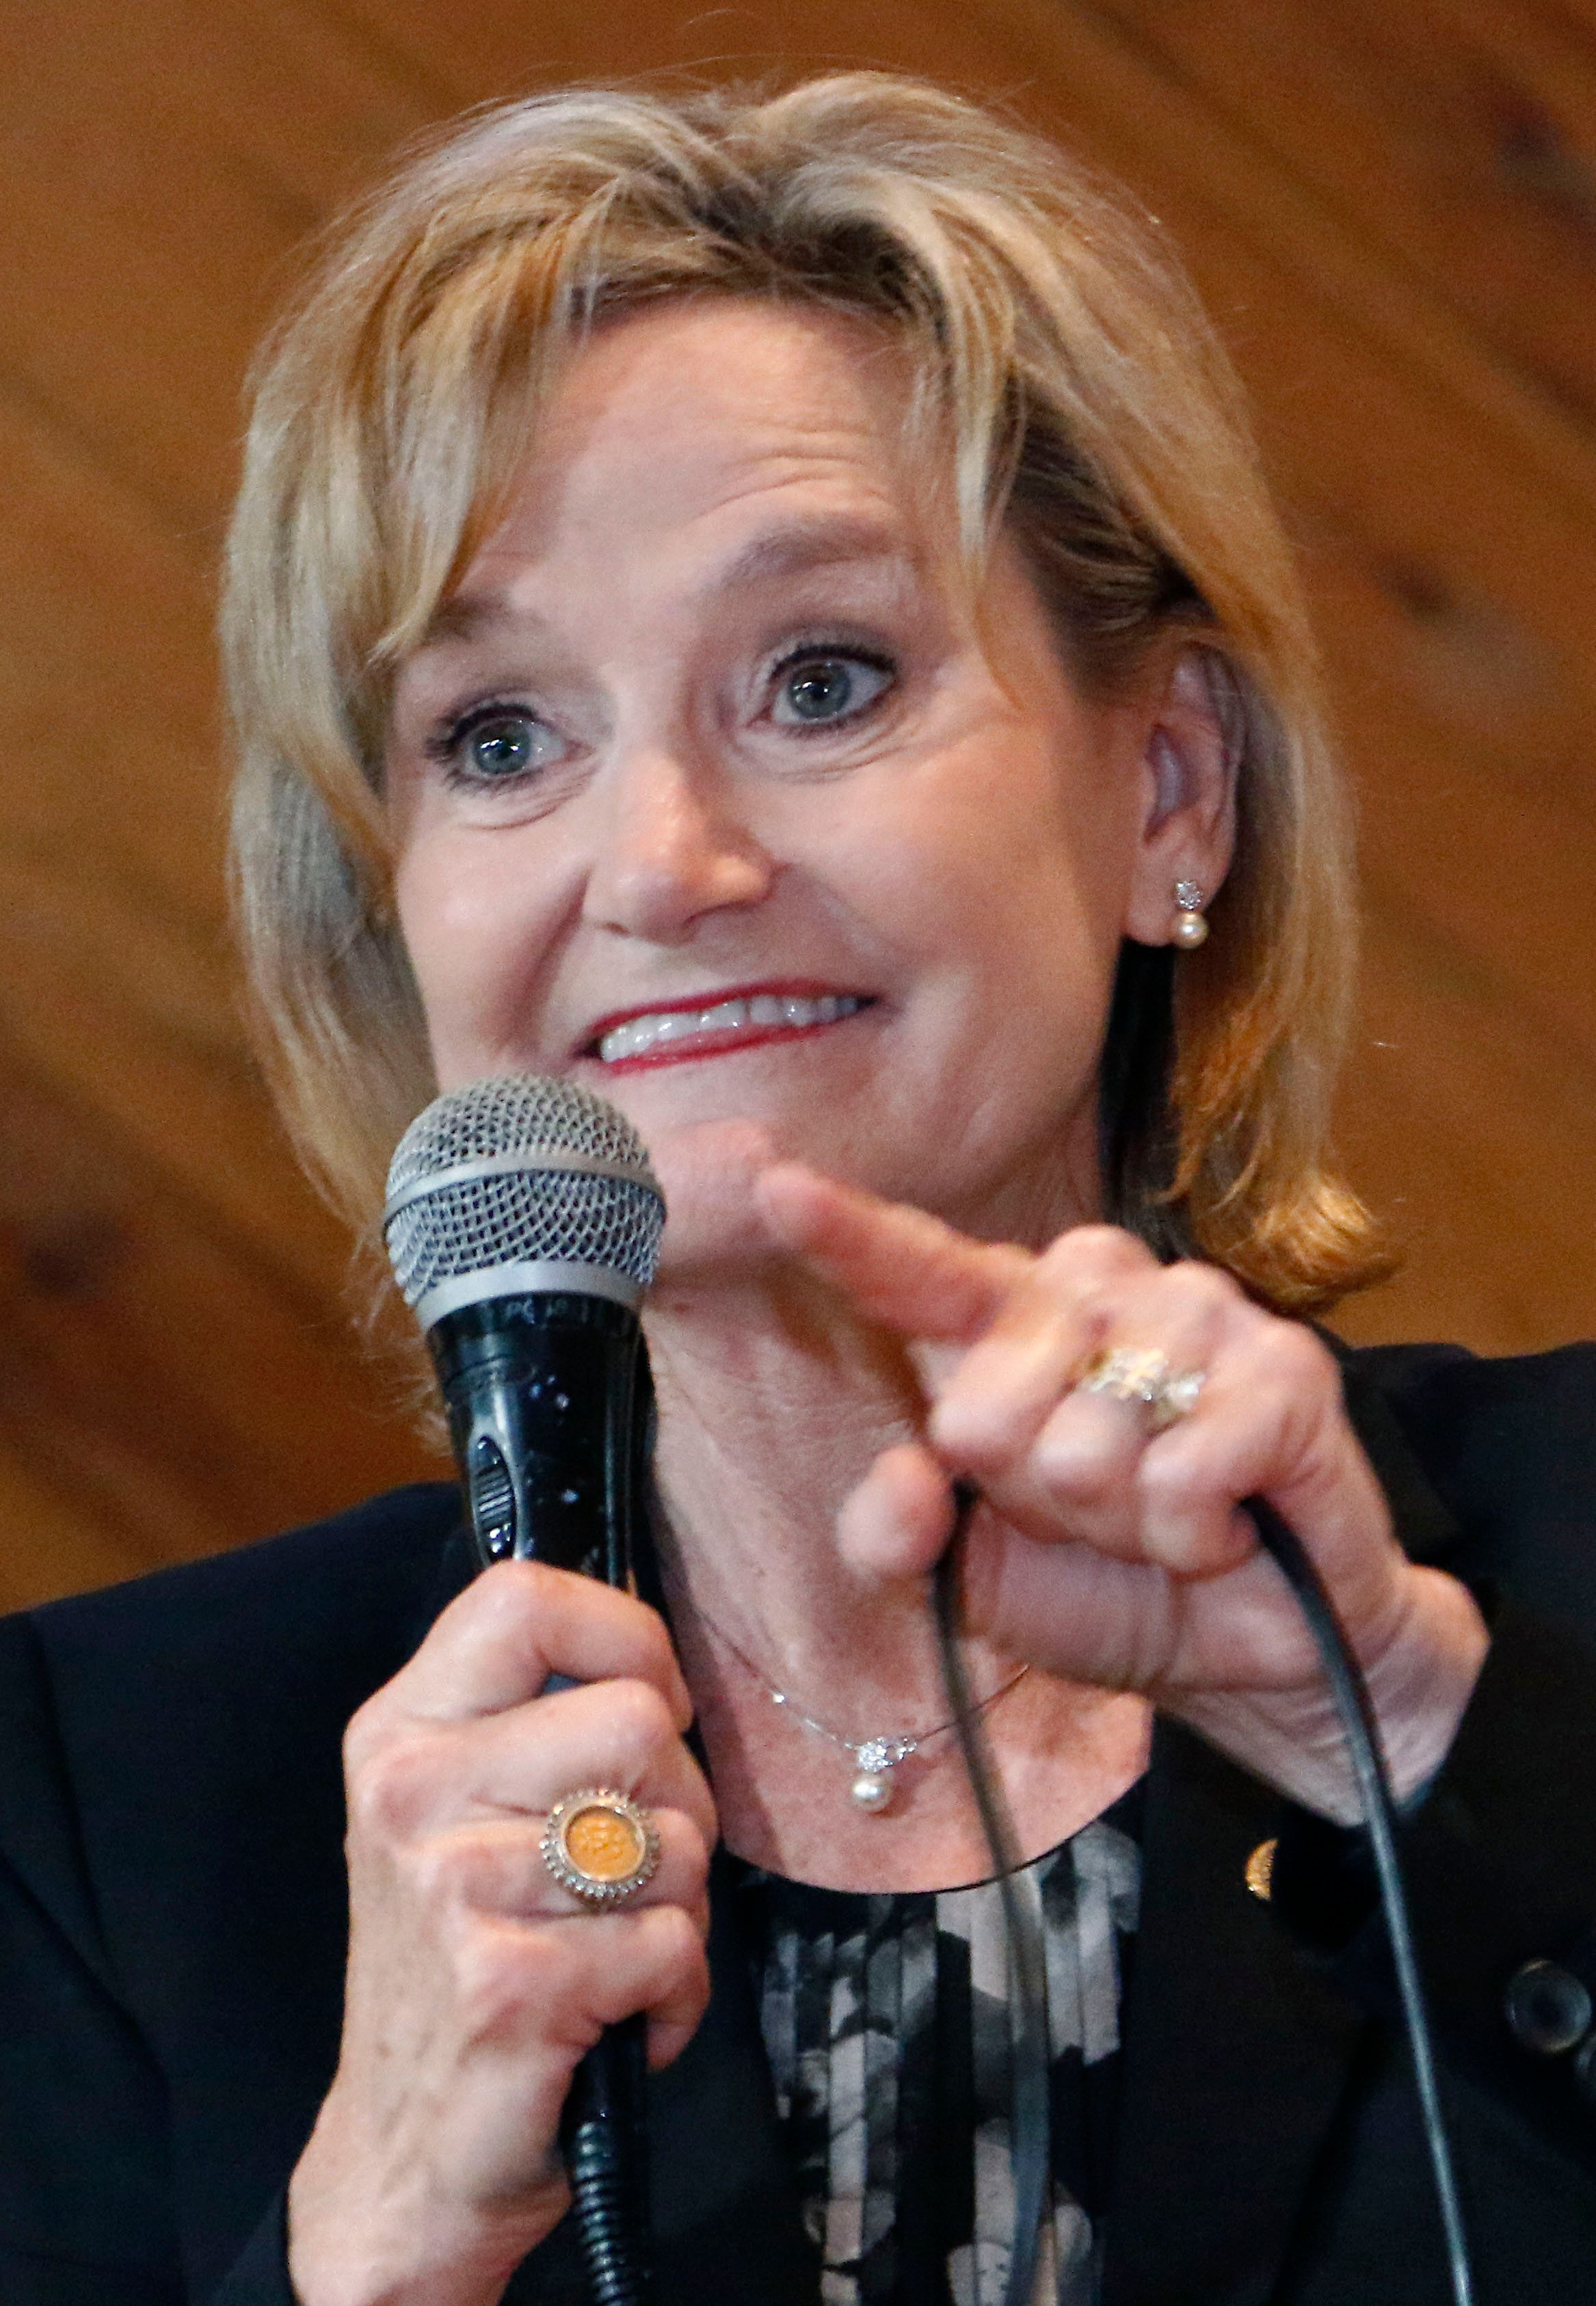 U.S. Sen. Cindy Hyde-Smith, R-Miss., addresses a gathering of supporters in Jackson, Miss., Monday, Nov. 5, 2018. Hyde-Smith hopes to get elected to serve the last two years of the six-year term vacated when Republican Thad Cochran retired for health reasons. State Sen. Chris McDaniel, R-Ellisville, former military intelligence officer Tobey Bernard Bartee and former Democratic congressman and Agriculture Secretary under the Clinton Administration Mike Espy are also running in the non-partisan race. (AP Photo/Rogelio V. Solis)